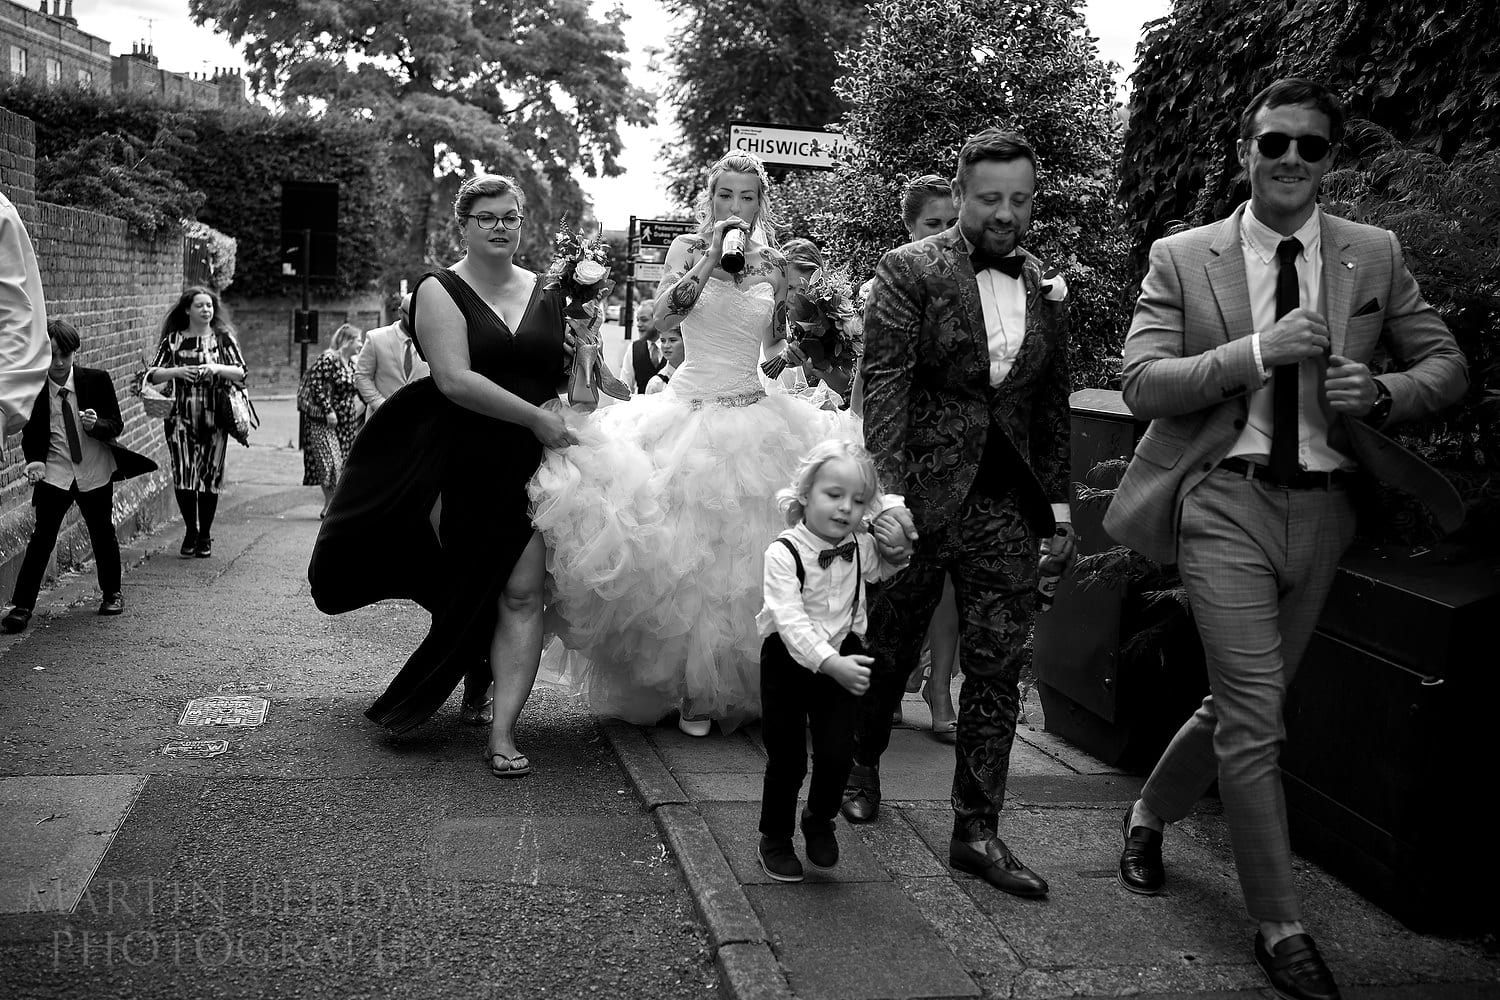 Wedding party heads to the picnic in the park